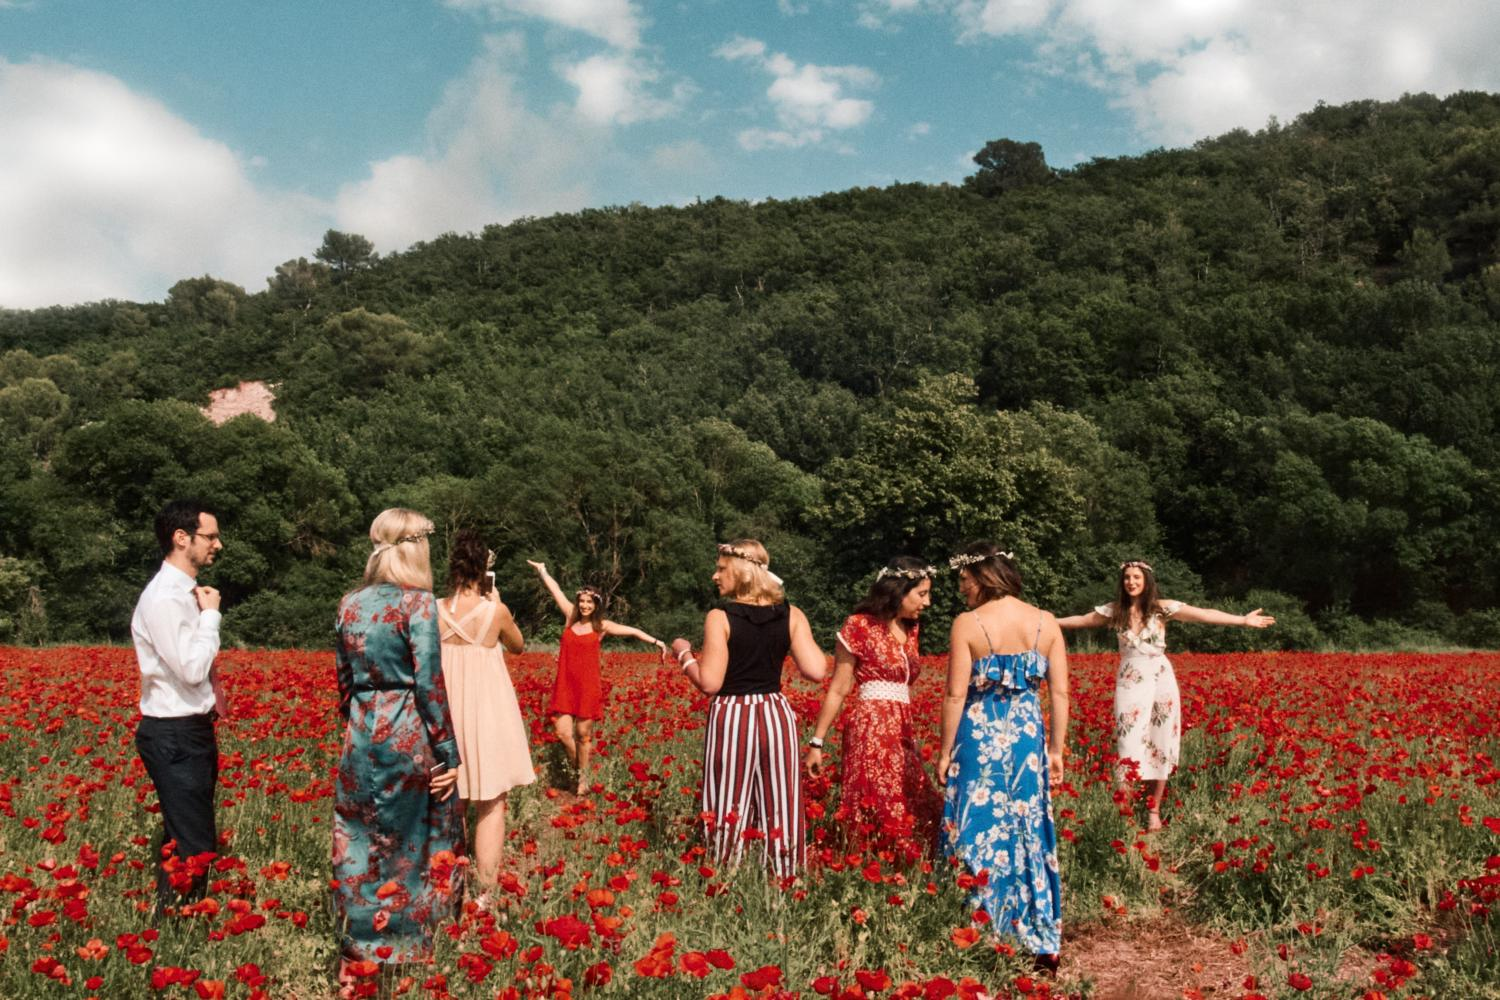 A bridal party explore a poppy field in France